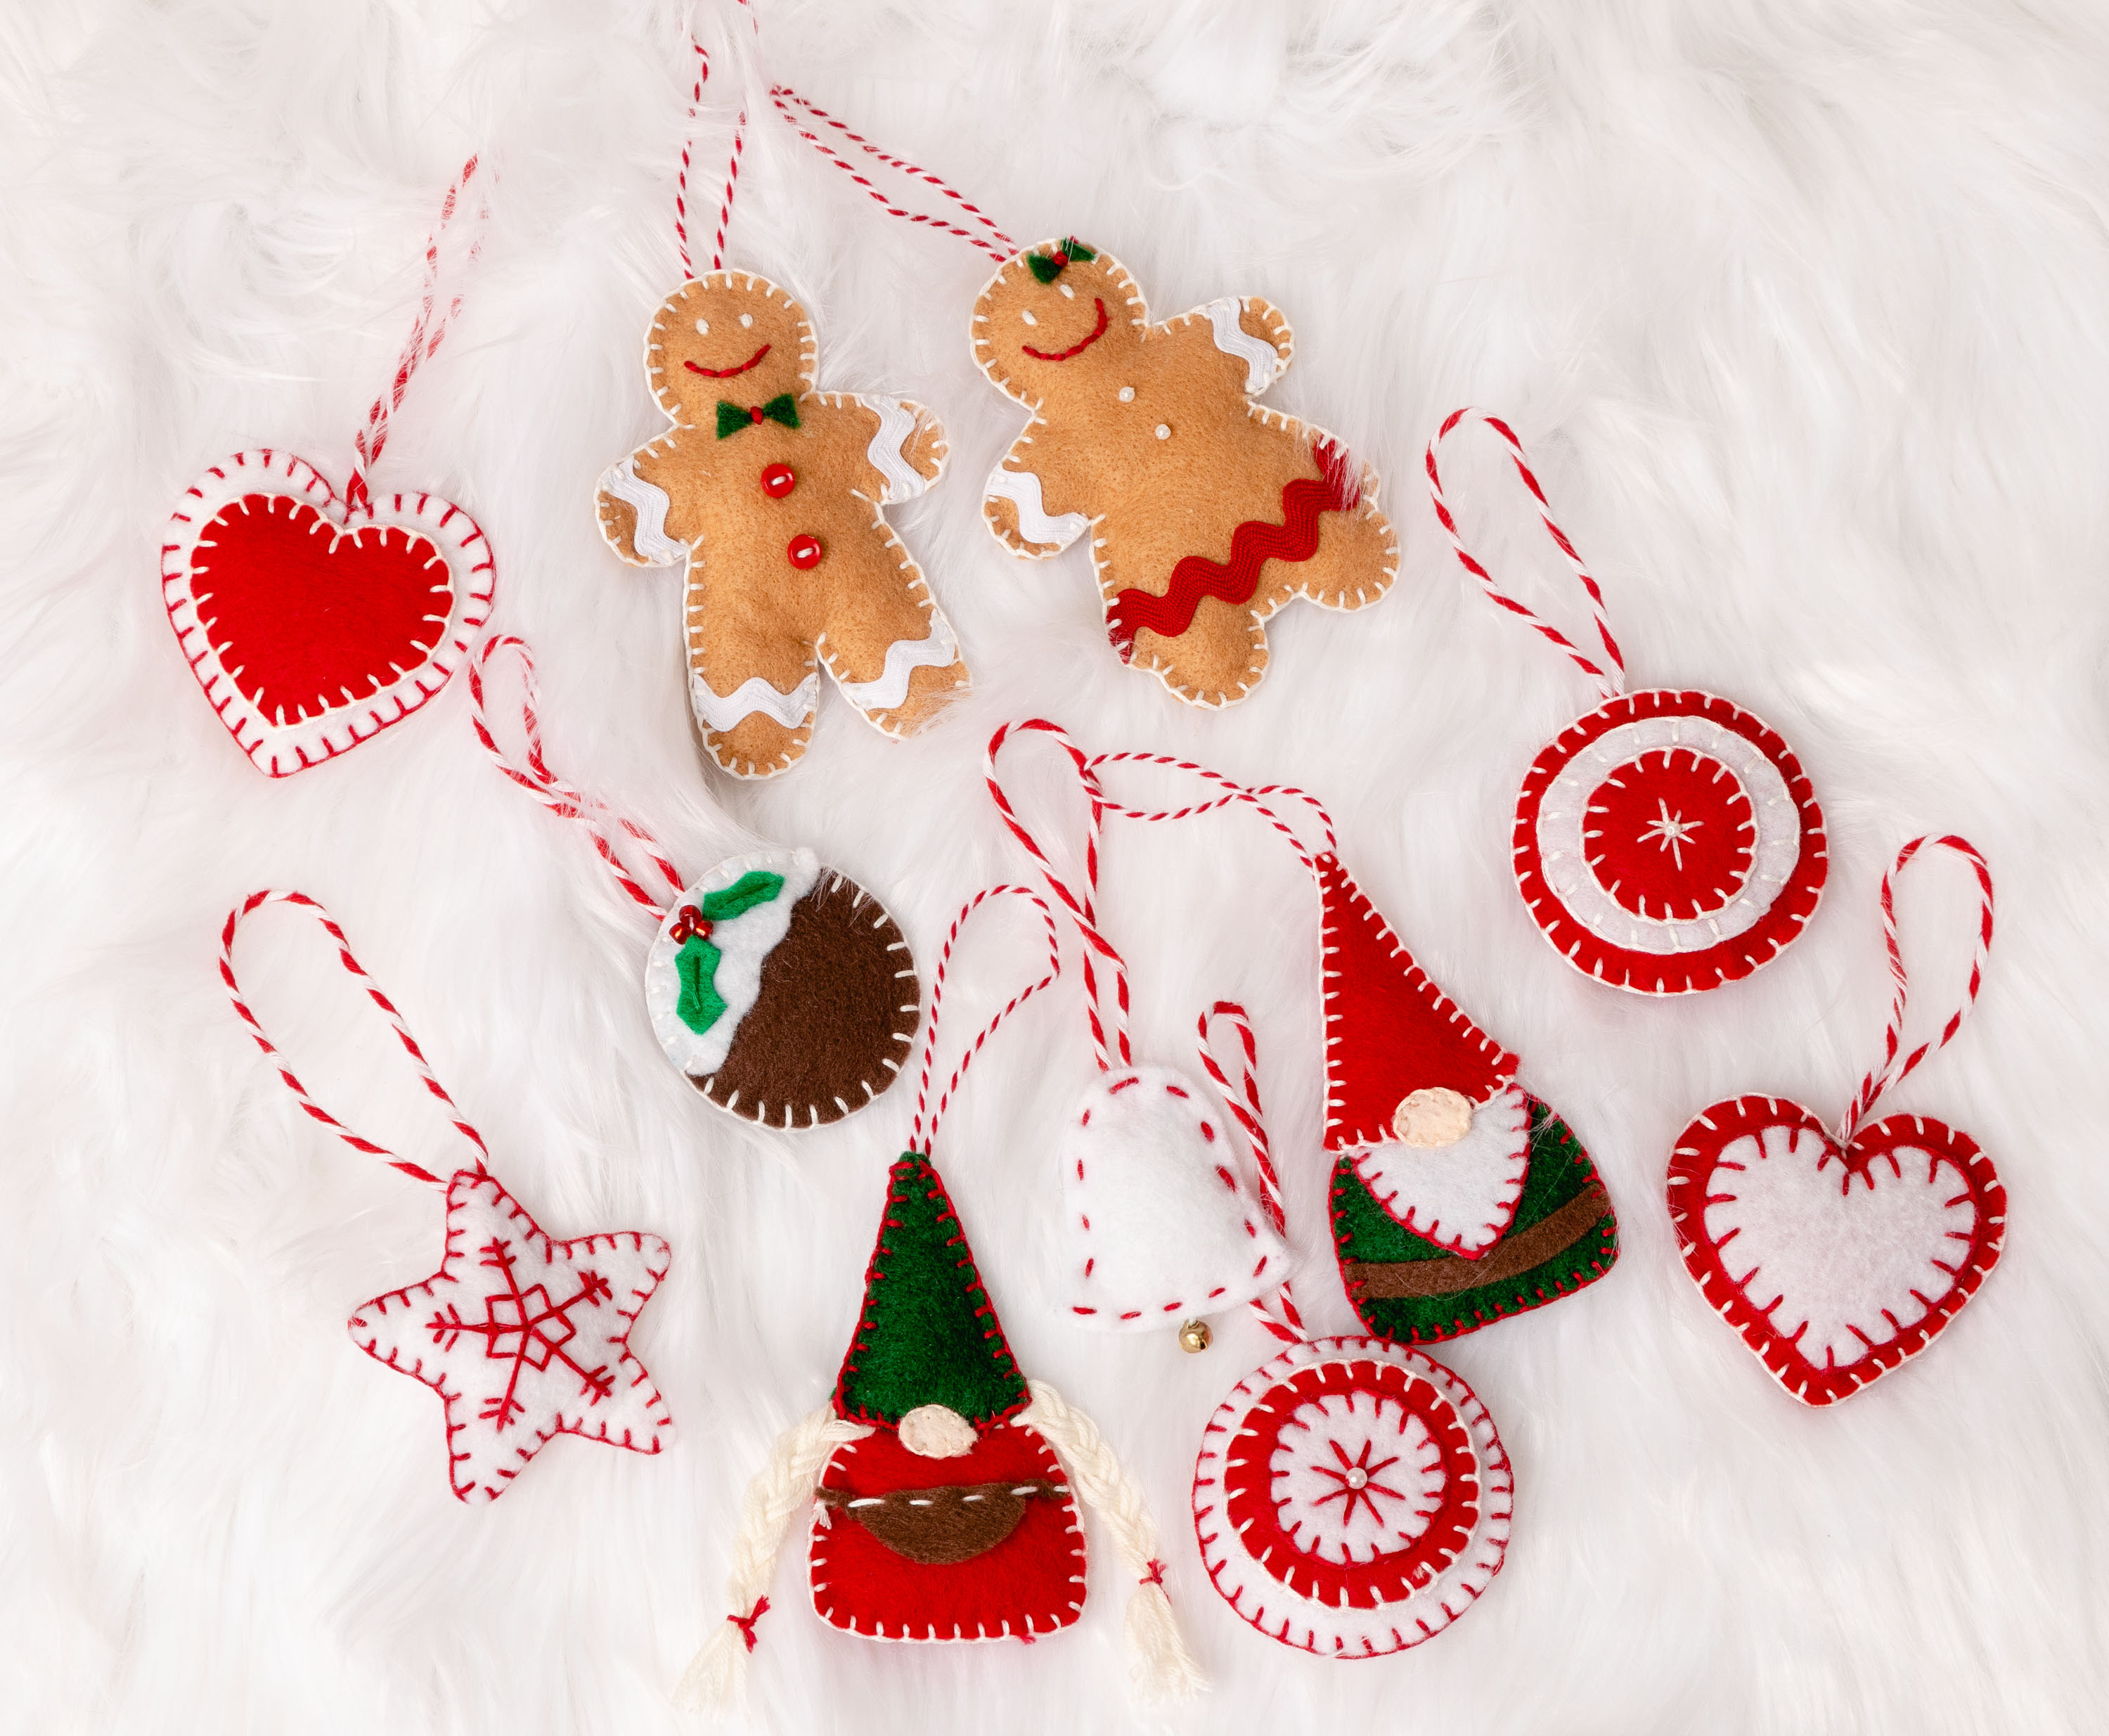 Nordic and Vintage style ornaments